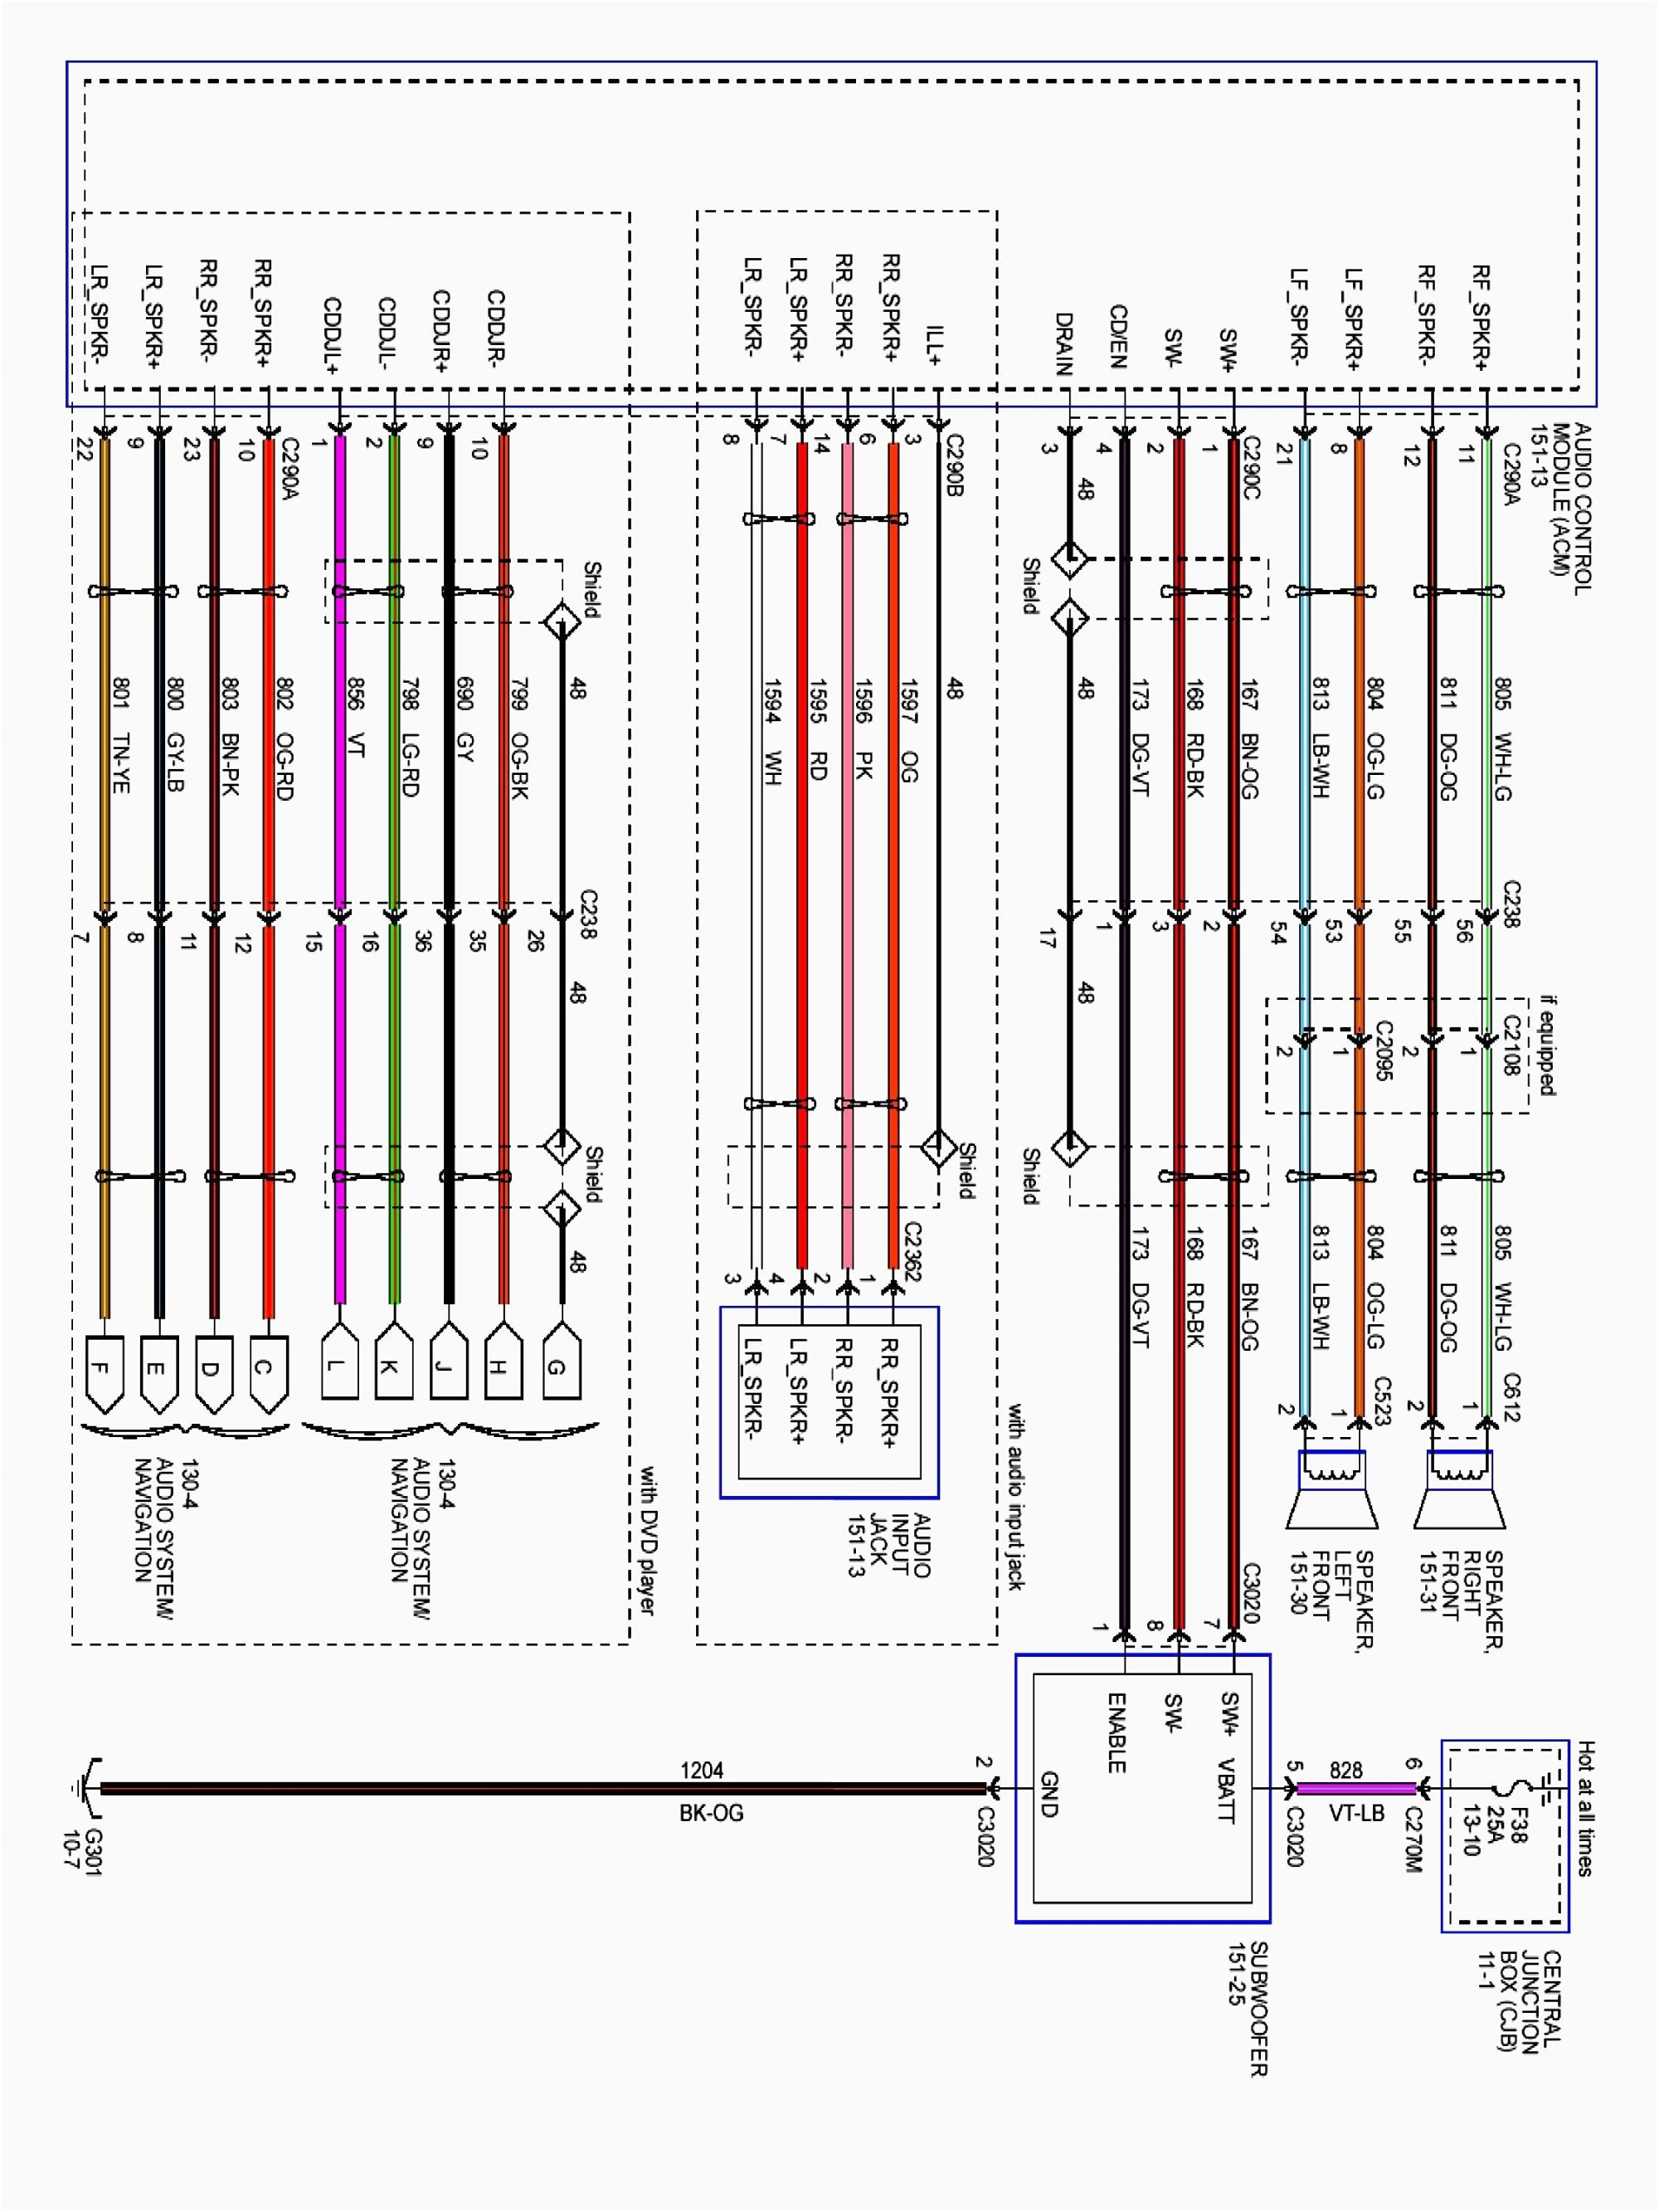 hight resolution of 2003 f250 trailer wiring harness wiring diagram used 2003 f250 trailer wiring harness